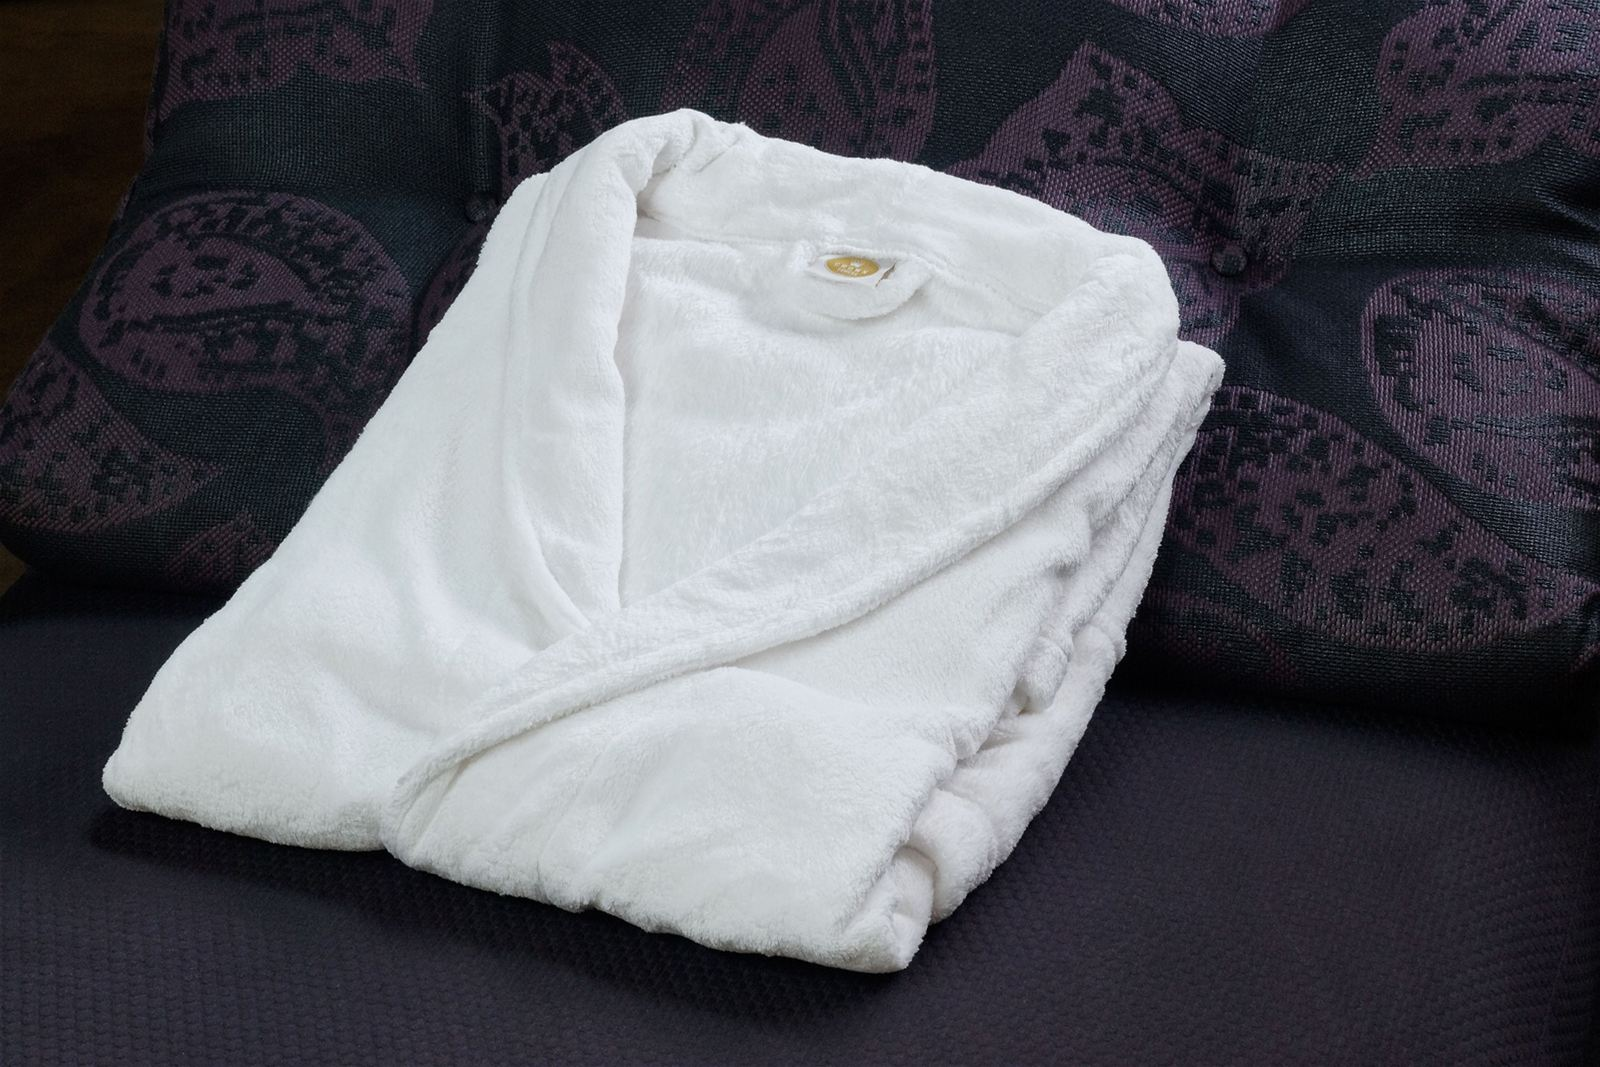 Crown Towers Bathrobe